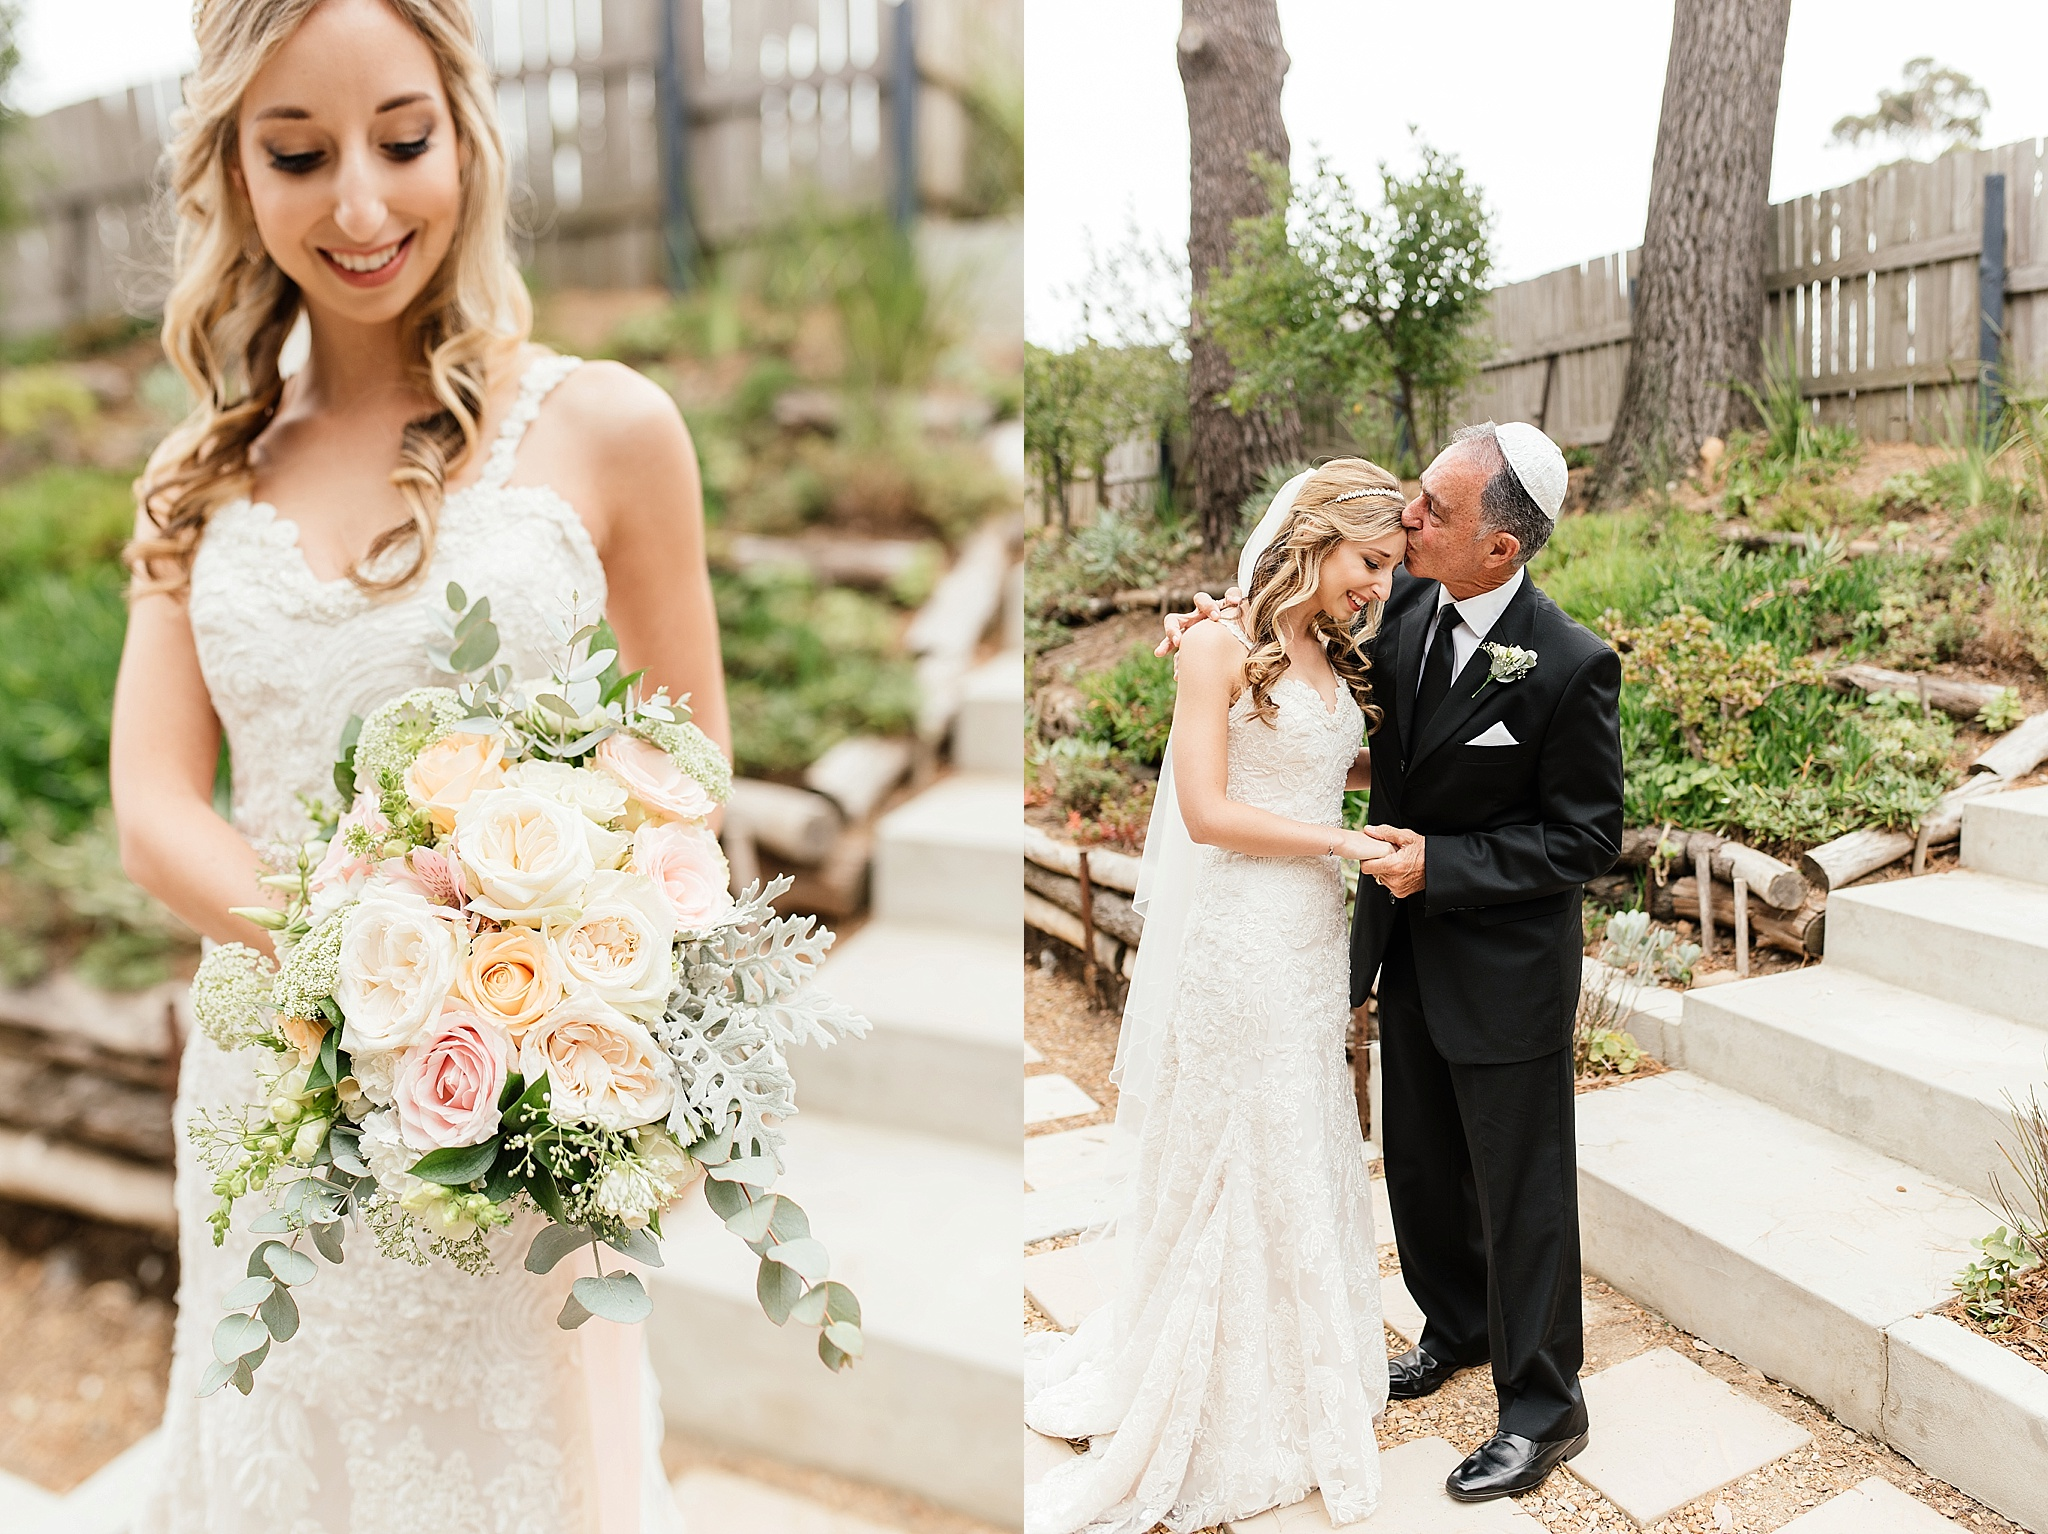 Cape Town Wedding Photographer Darren Bester - SuikerBossie - Stephen and Mikaela_0016.jpg